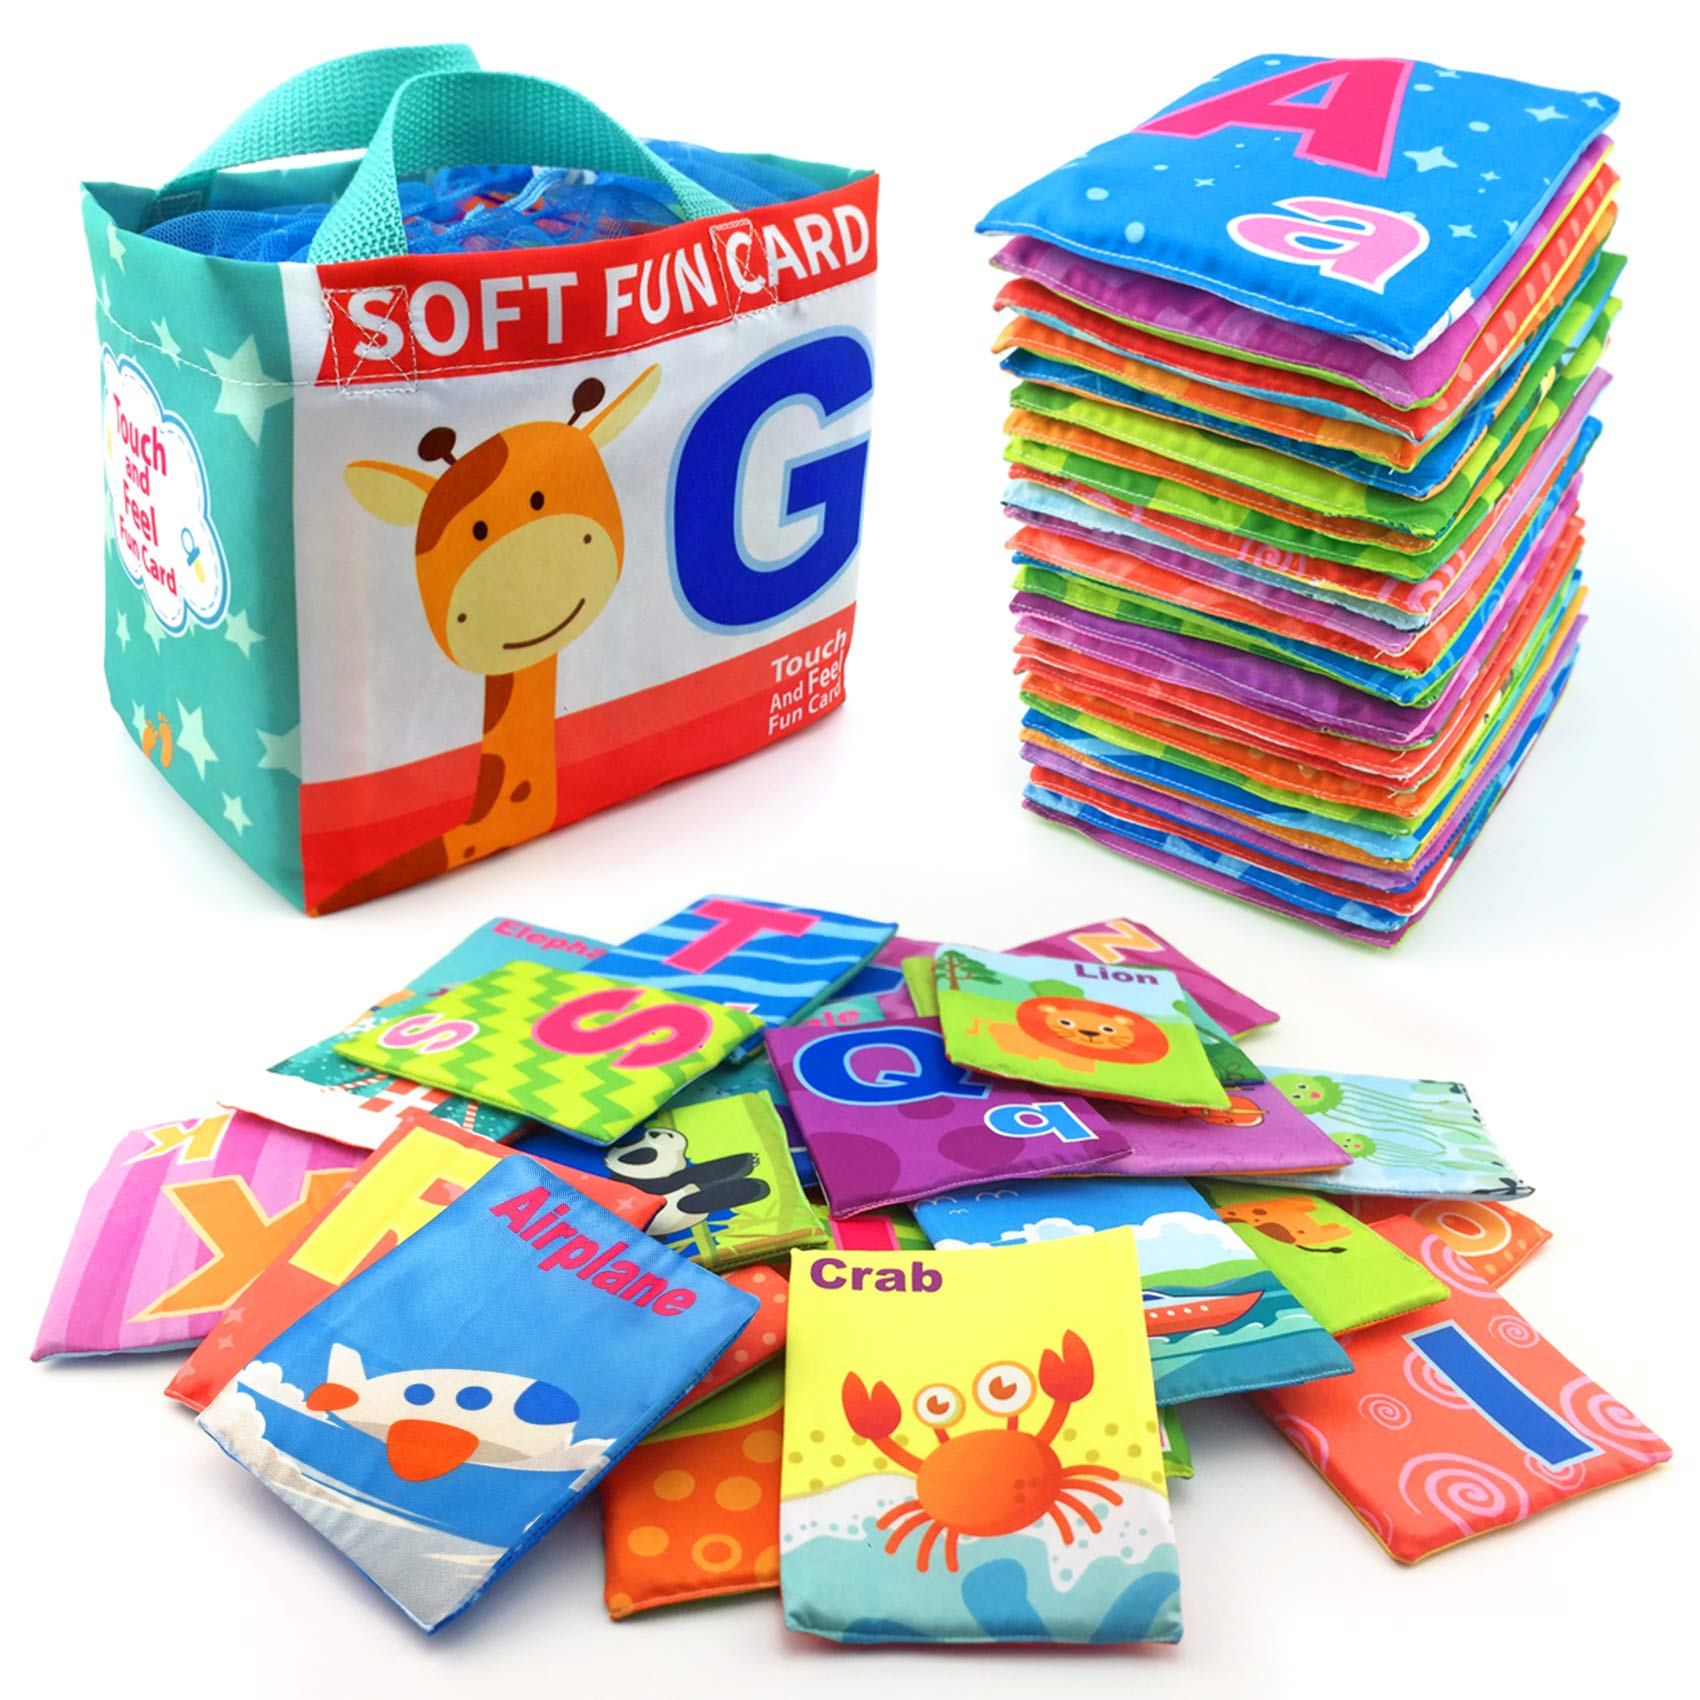 26 Pieces Soft Alphabet Cards with Cloth Storage Bag for Babies Infants, Toddlers and Kids ABCs Learning Flash Cards, Best Early Educational Toys for 0 1 2 3 Years Old Boys and Girls